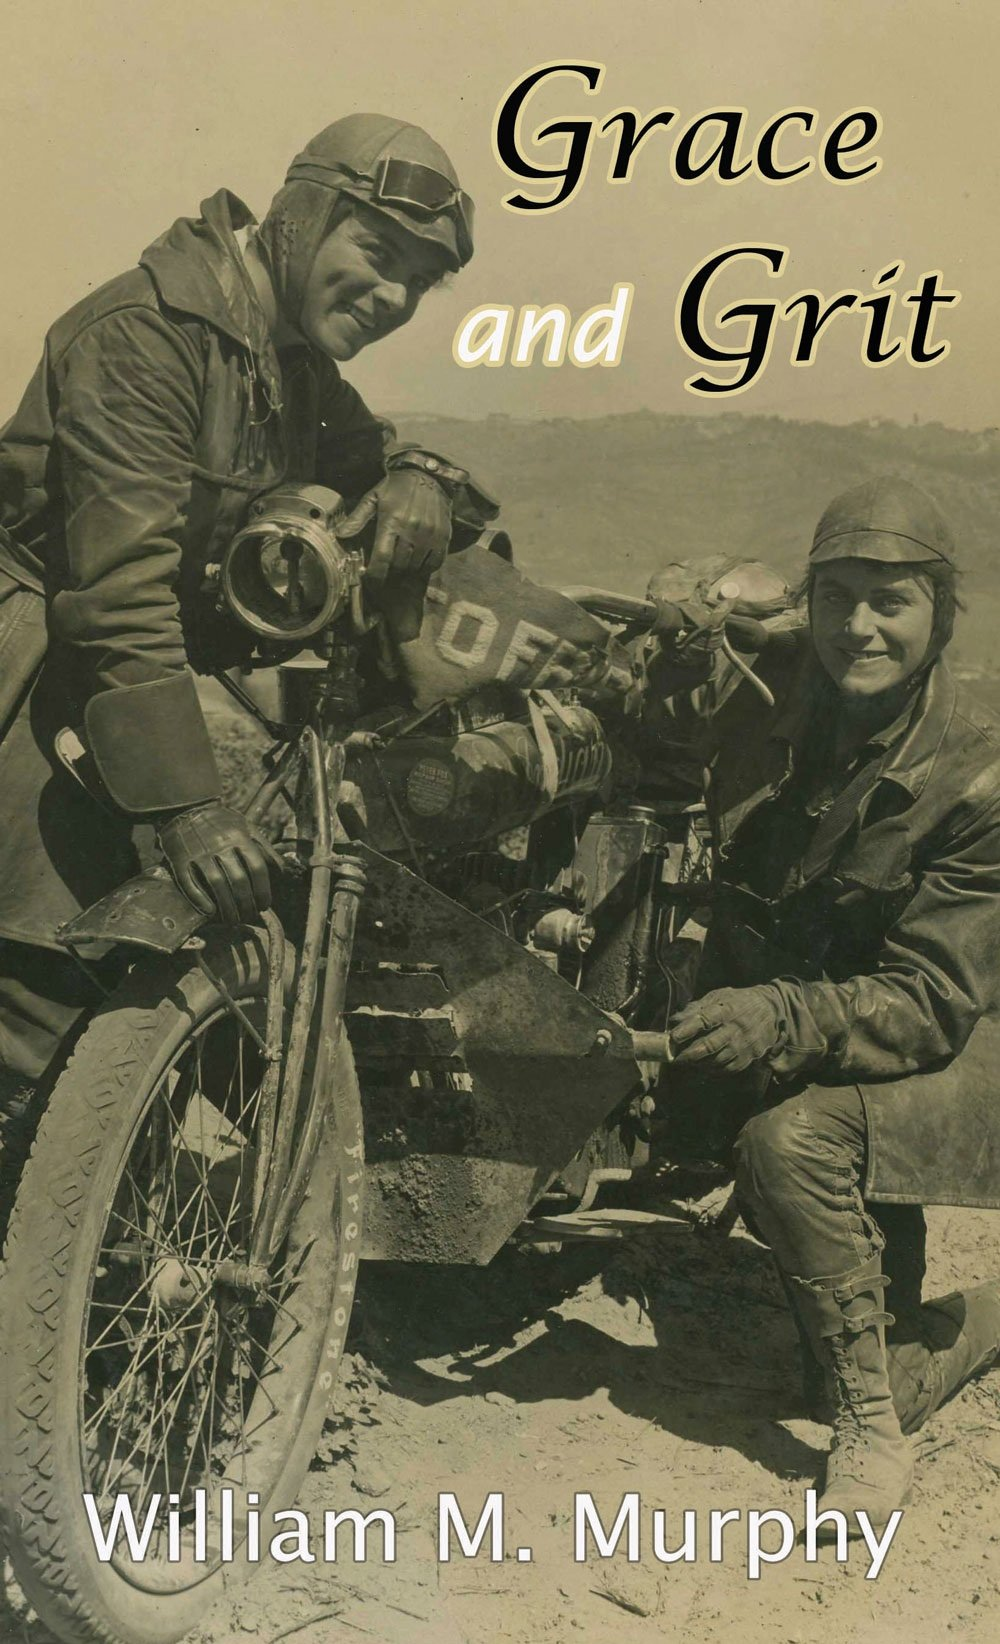 Grace and Grit: Motorcycle Dispatches from Early Twentieth Century Women Adventurers